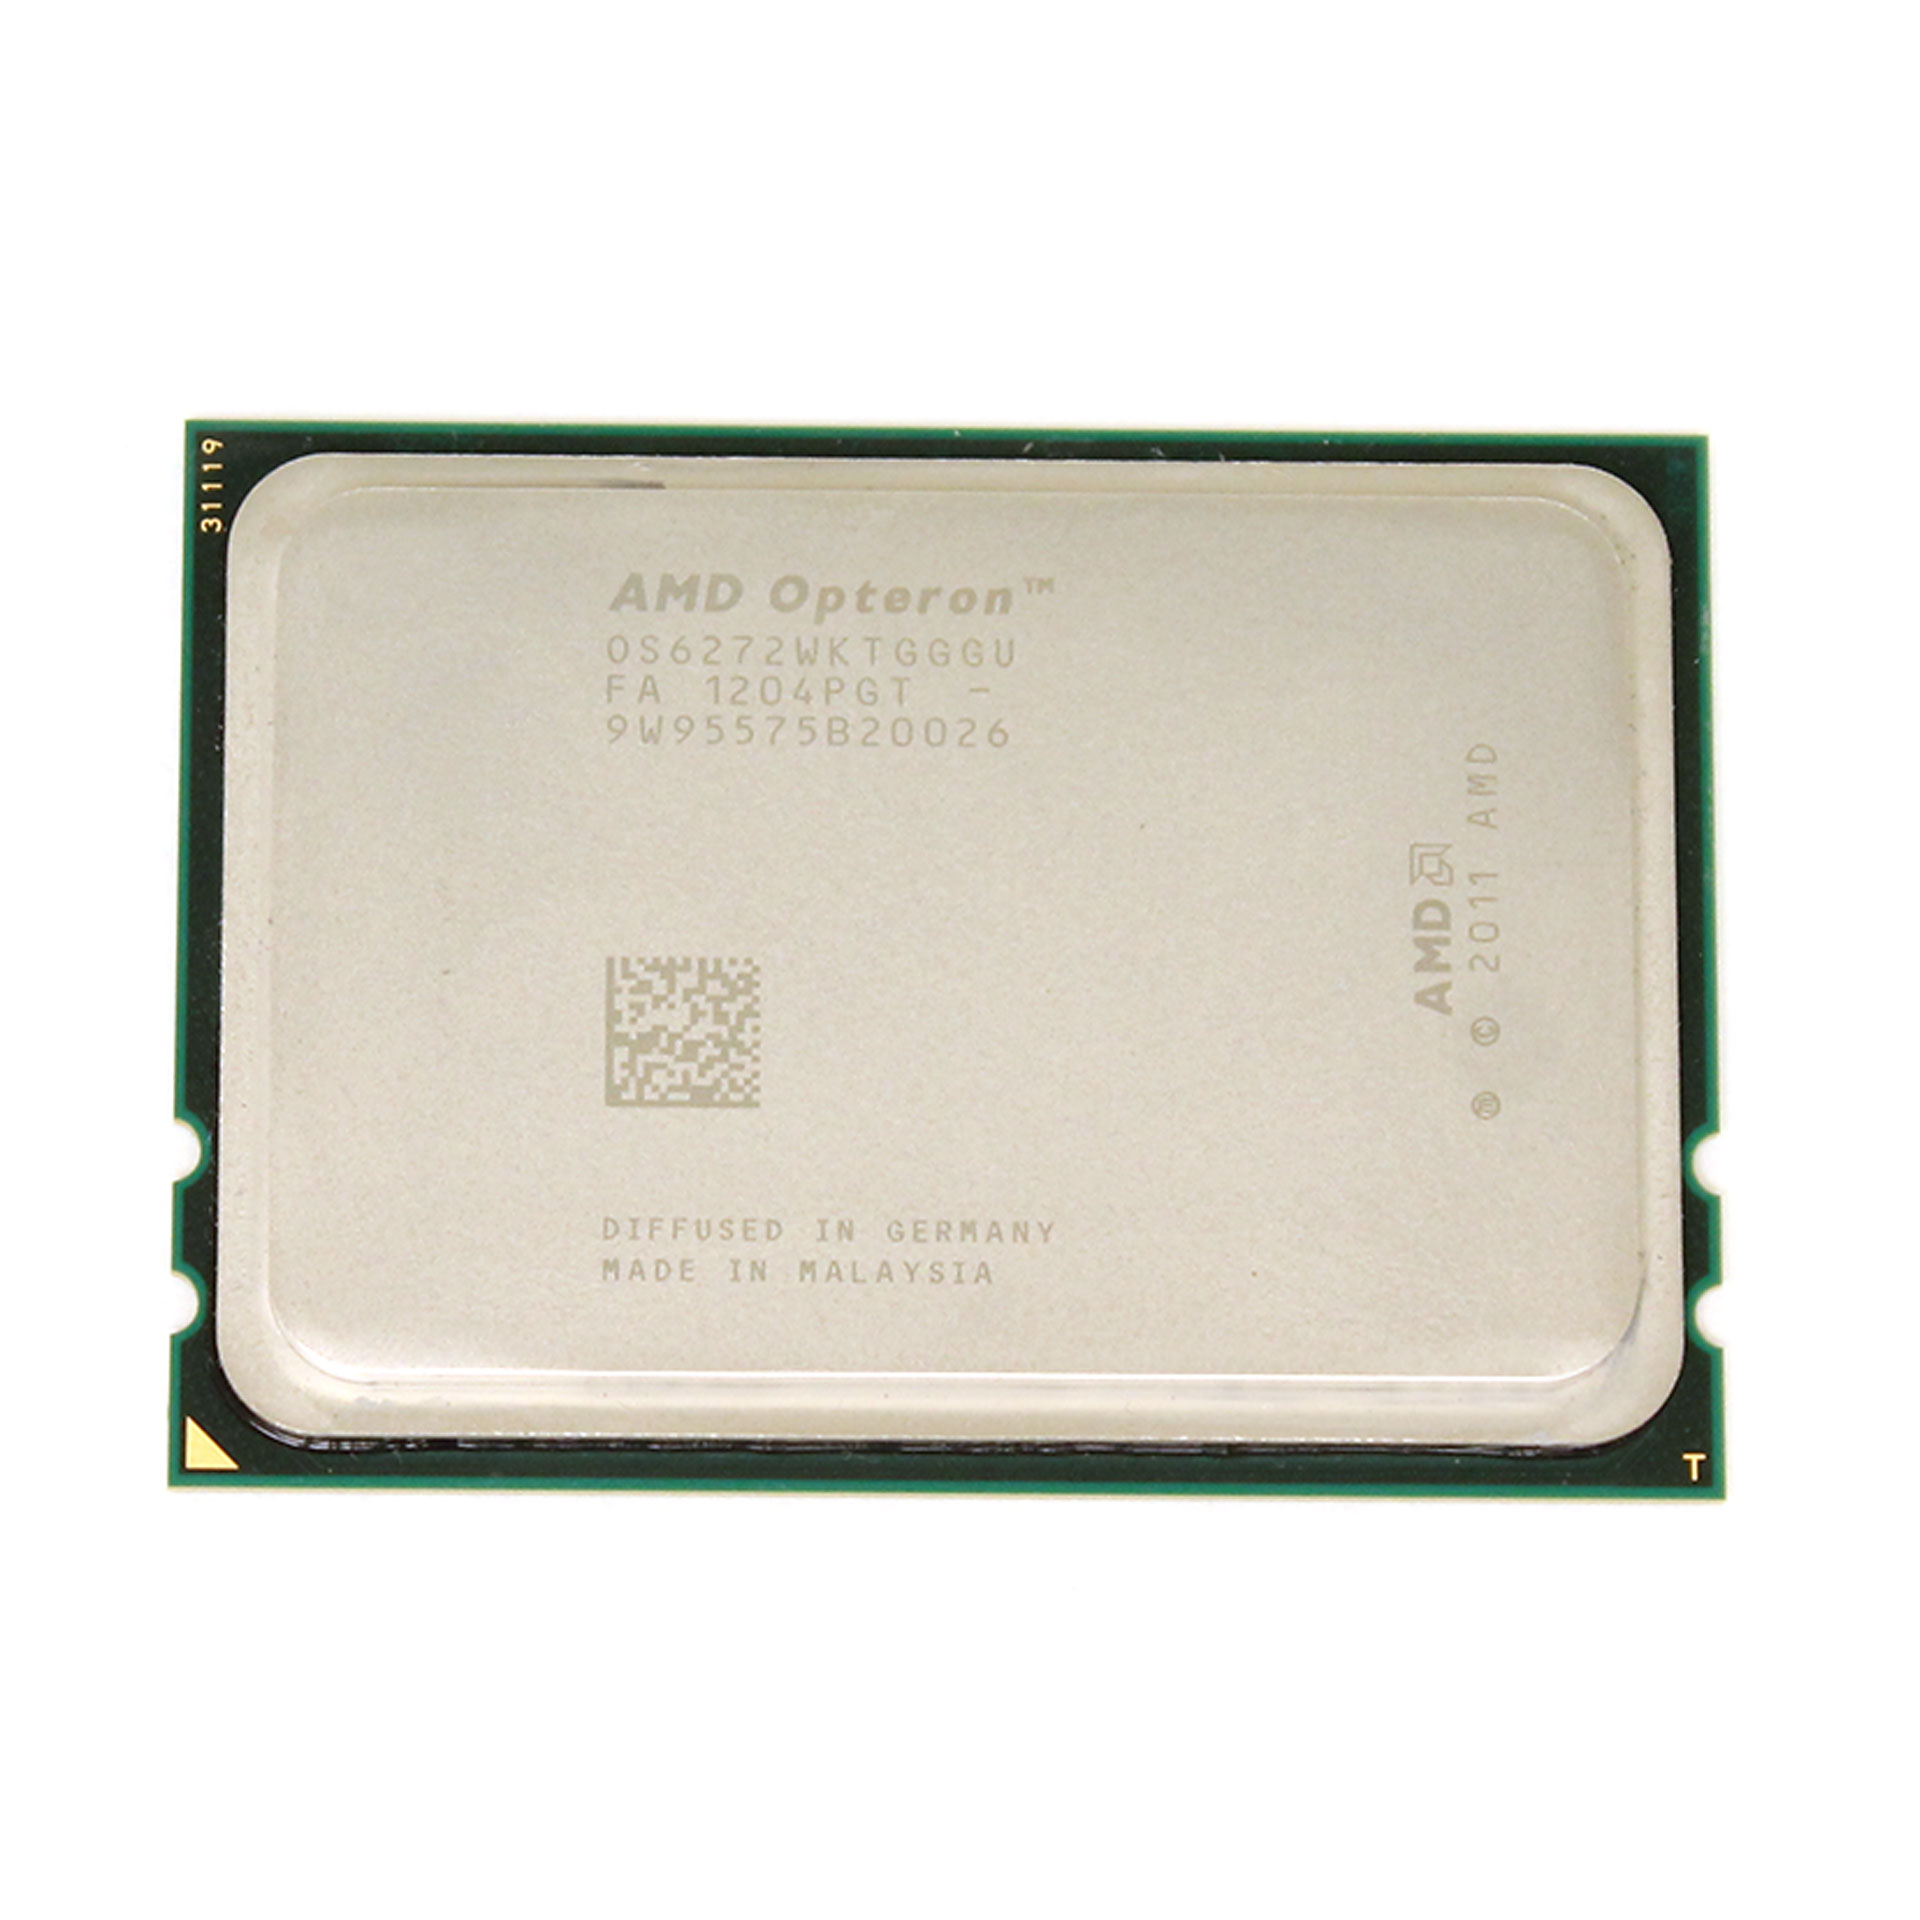 AMD Opteron 6272 Interlagos 2.1 GHz 16MB L3 Cache Socket G34